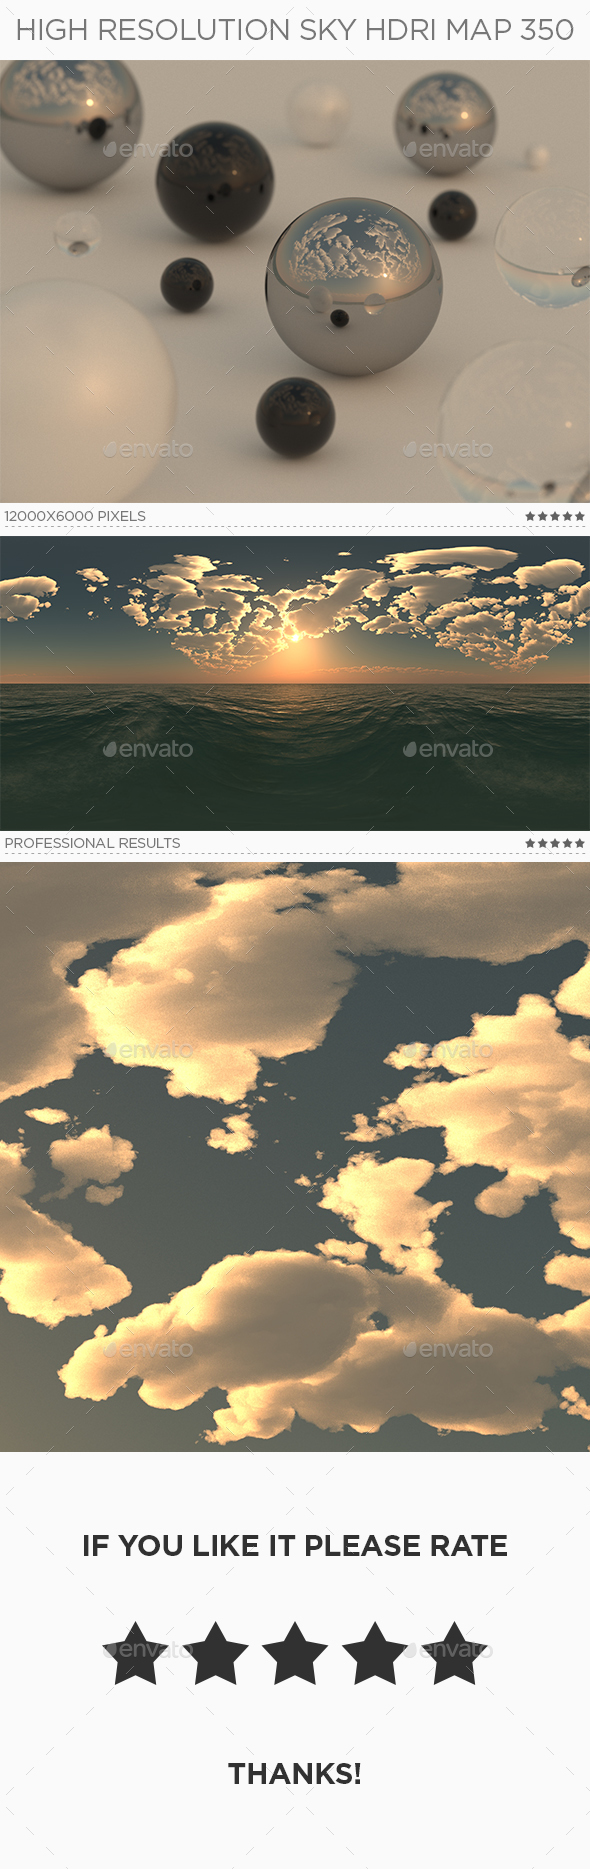 High Resolution Sky HDRi Map 350 - 3DOcean Item for Sale